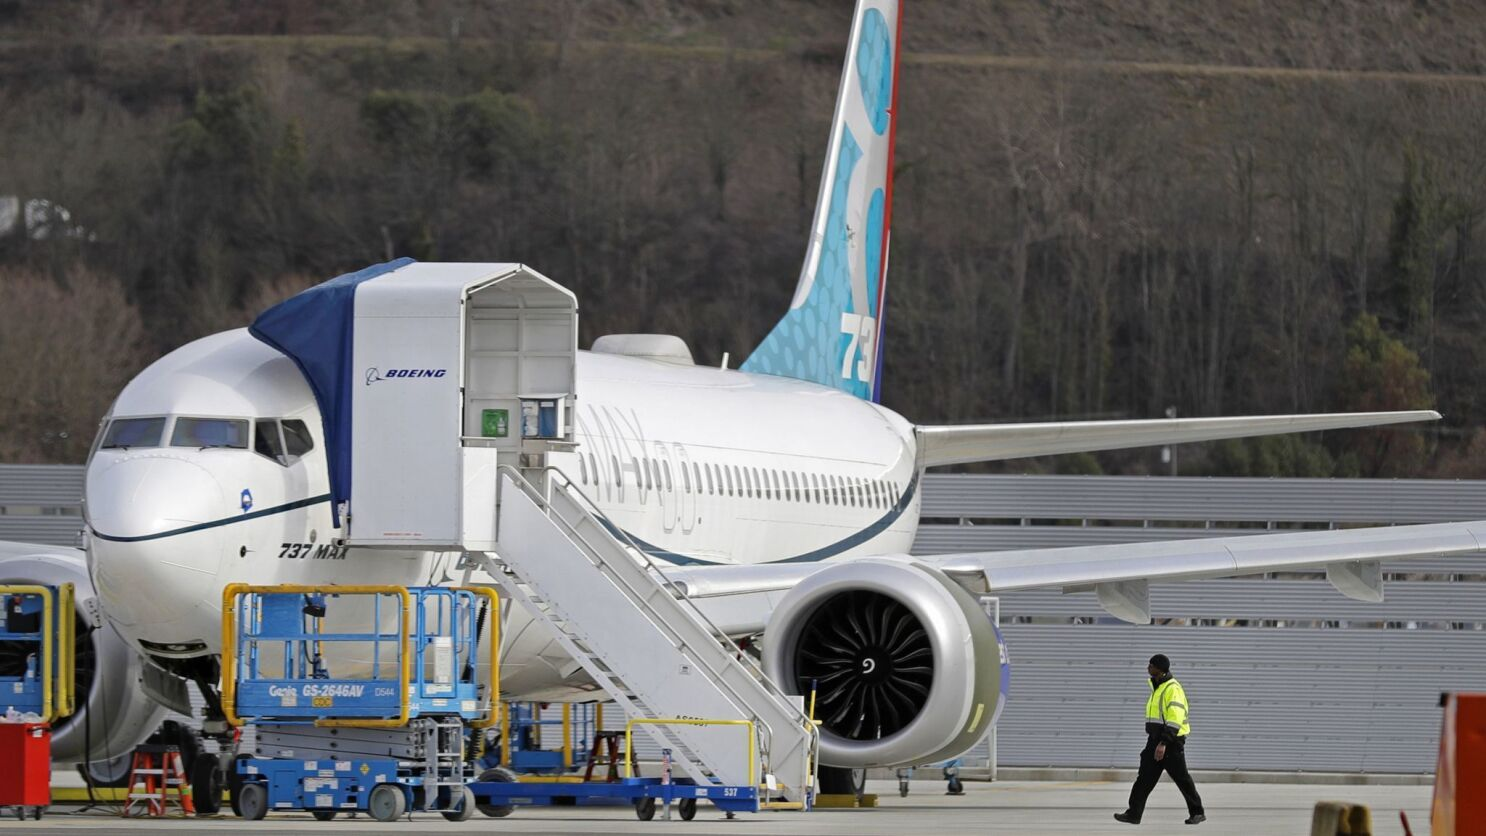 Must Reads How A 50 Year Old Design Came Back To Haunt Boeing With Its Troubled 737 Max Jet Los Angeles Times